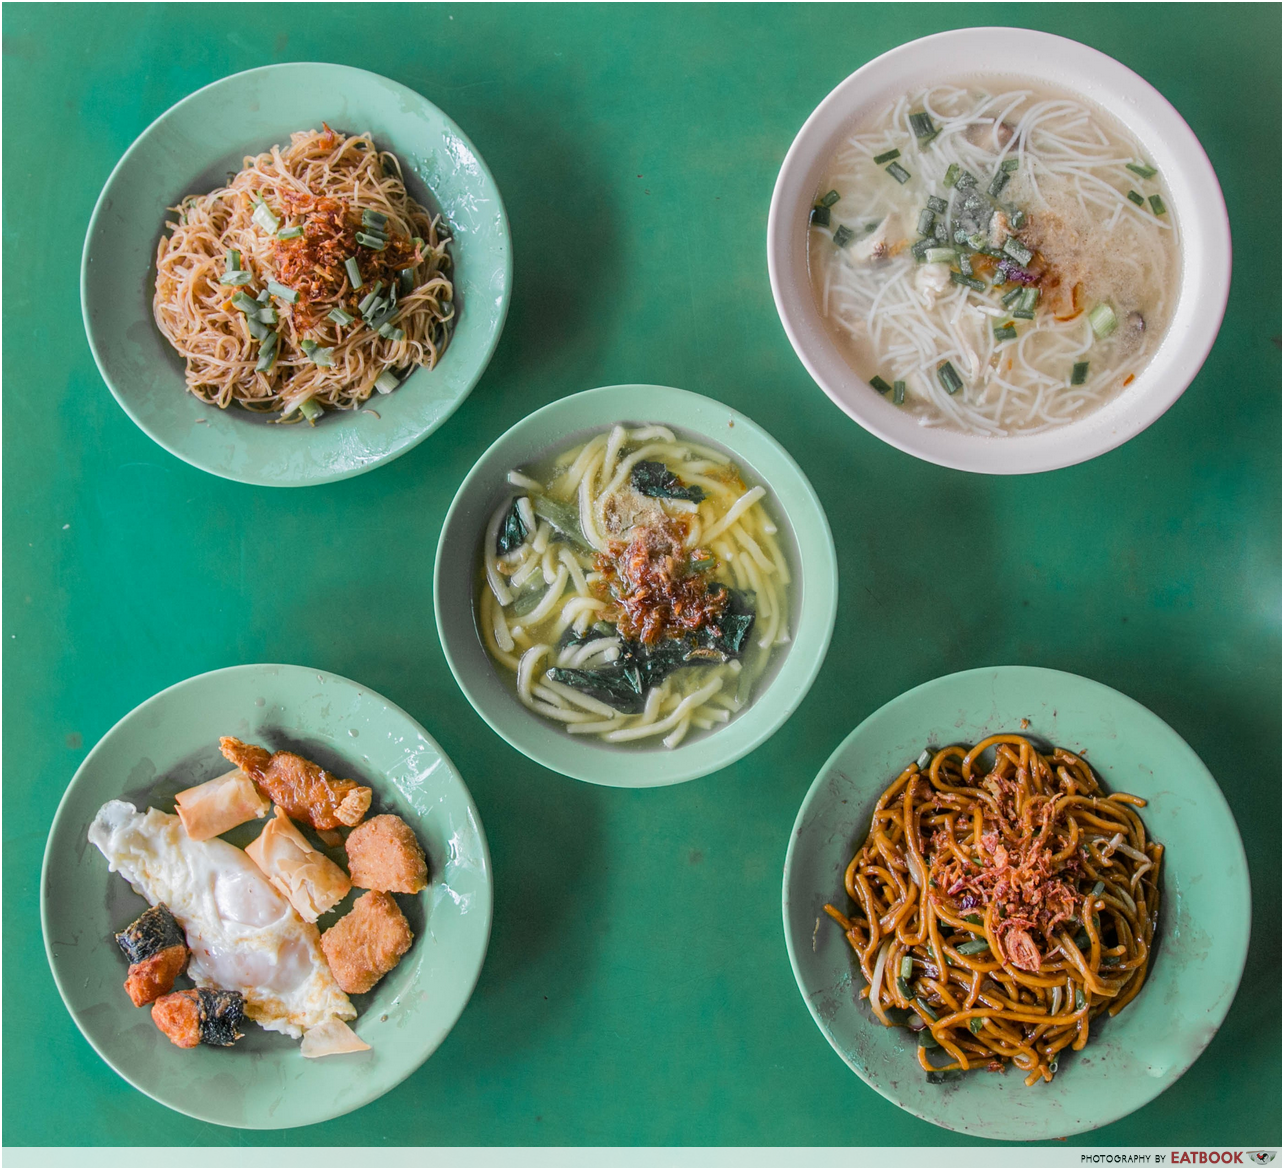 Chinese Food Chinatown: 10 Chinatown Food Gems Including Noodles At $1 And A 100cm